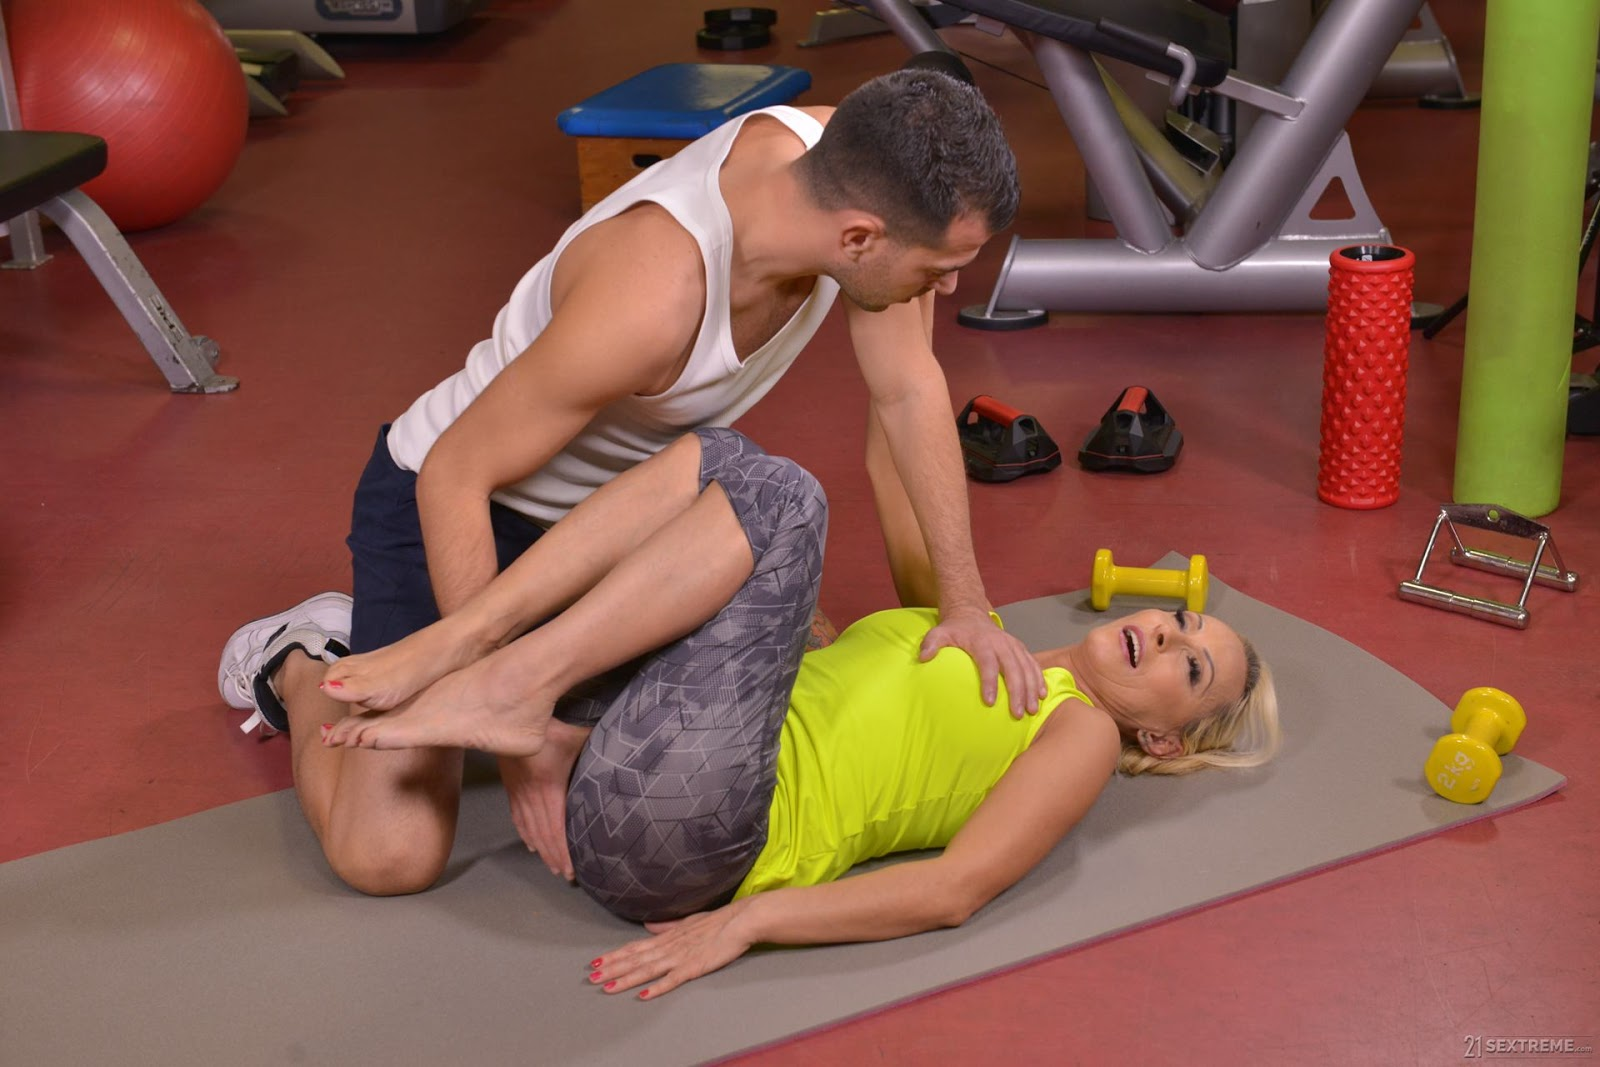 A Very Personal Trainer, 21 SEXTREME, 4K, Anal, Annoyed Teen Her Mentor,Threesome, Uncensored, Westen, Westen Porn,